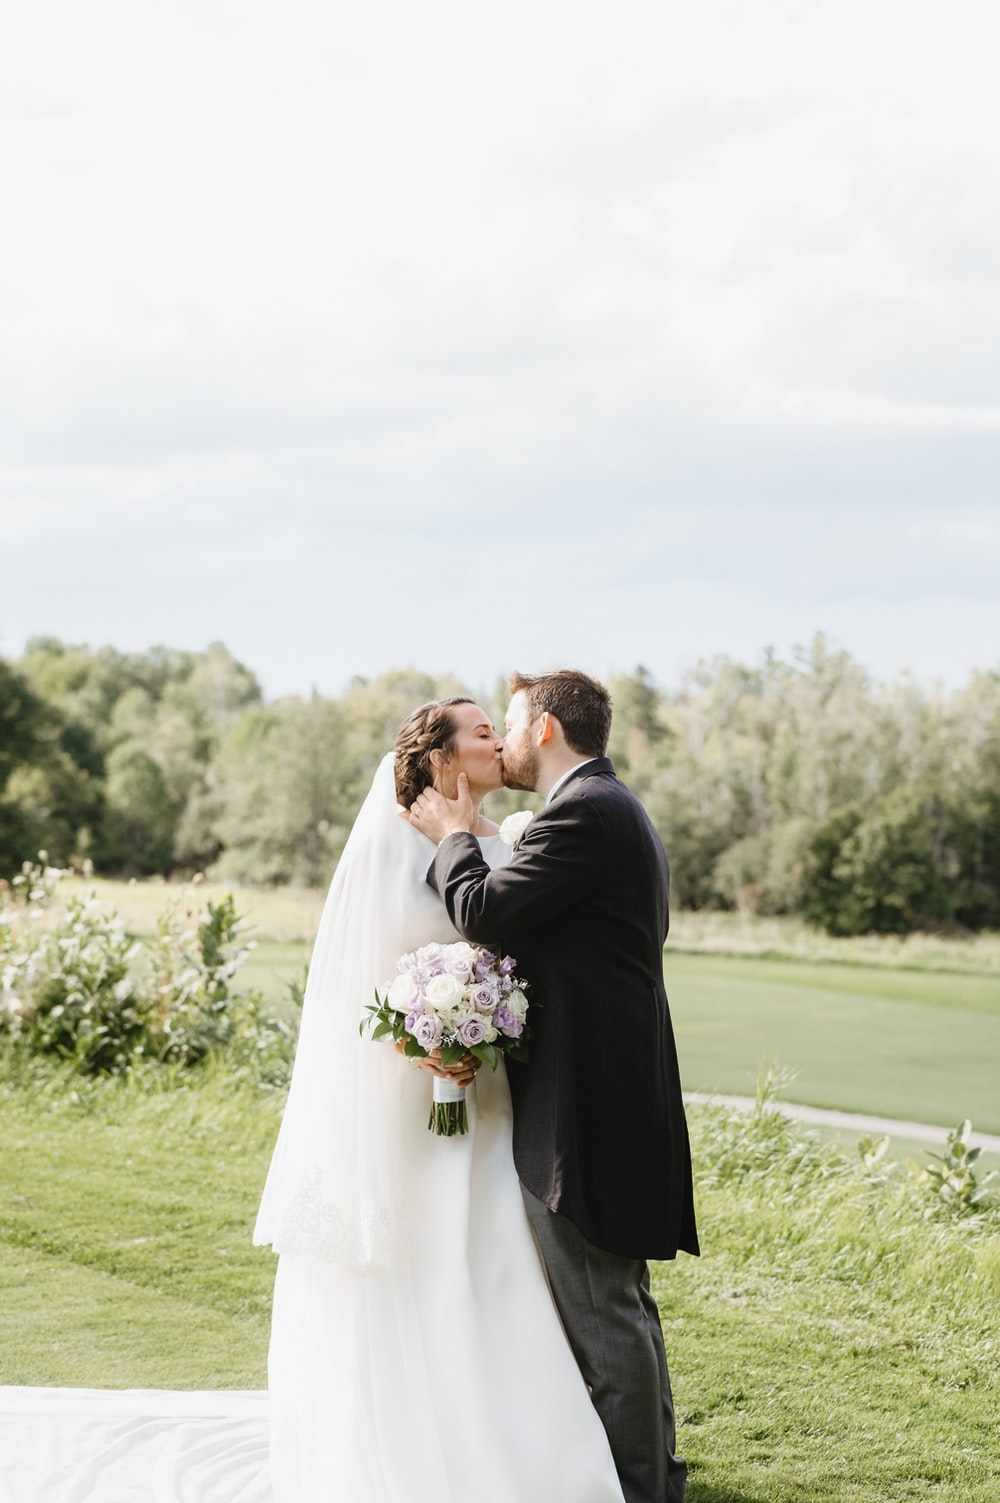 man and woman kissing on green grass field during daytime